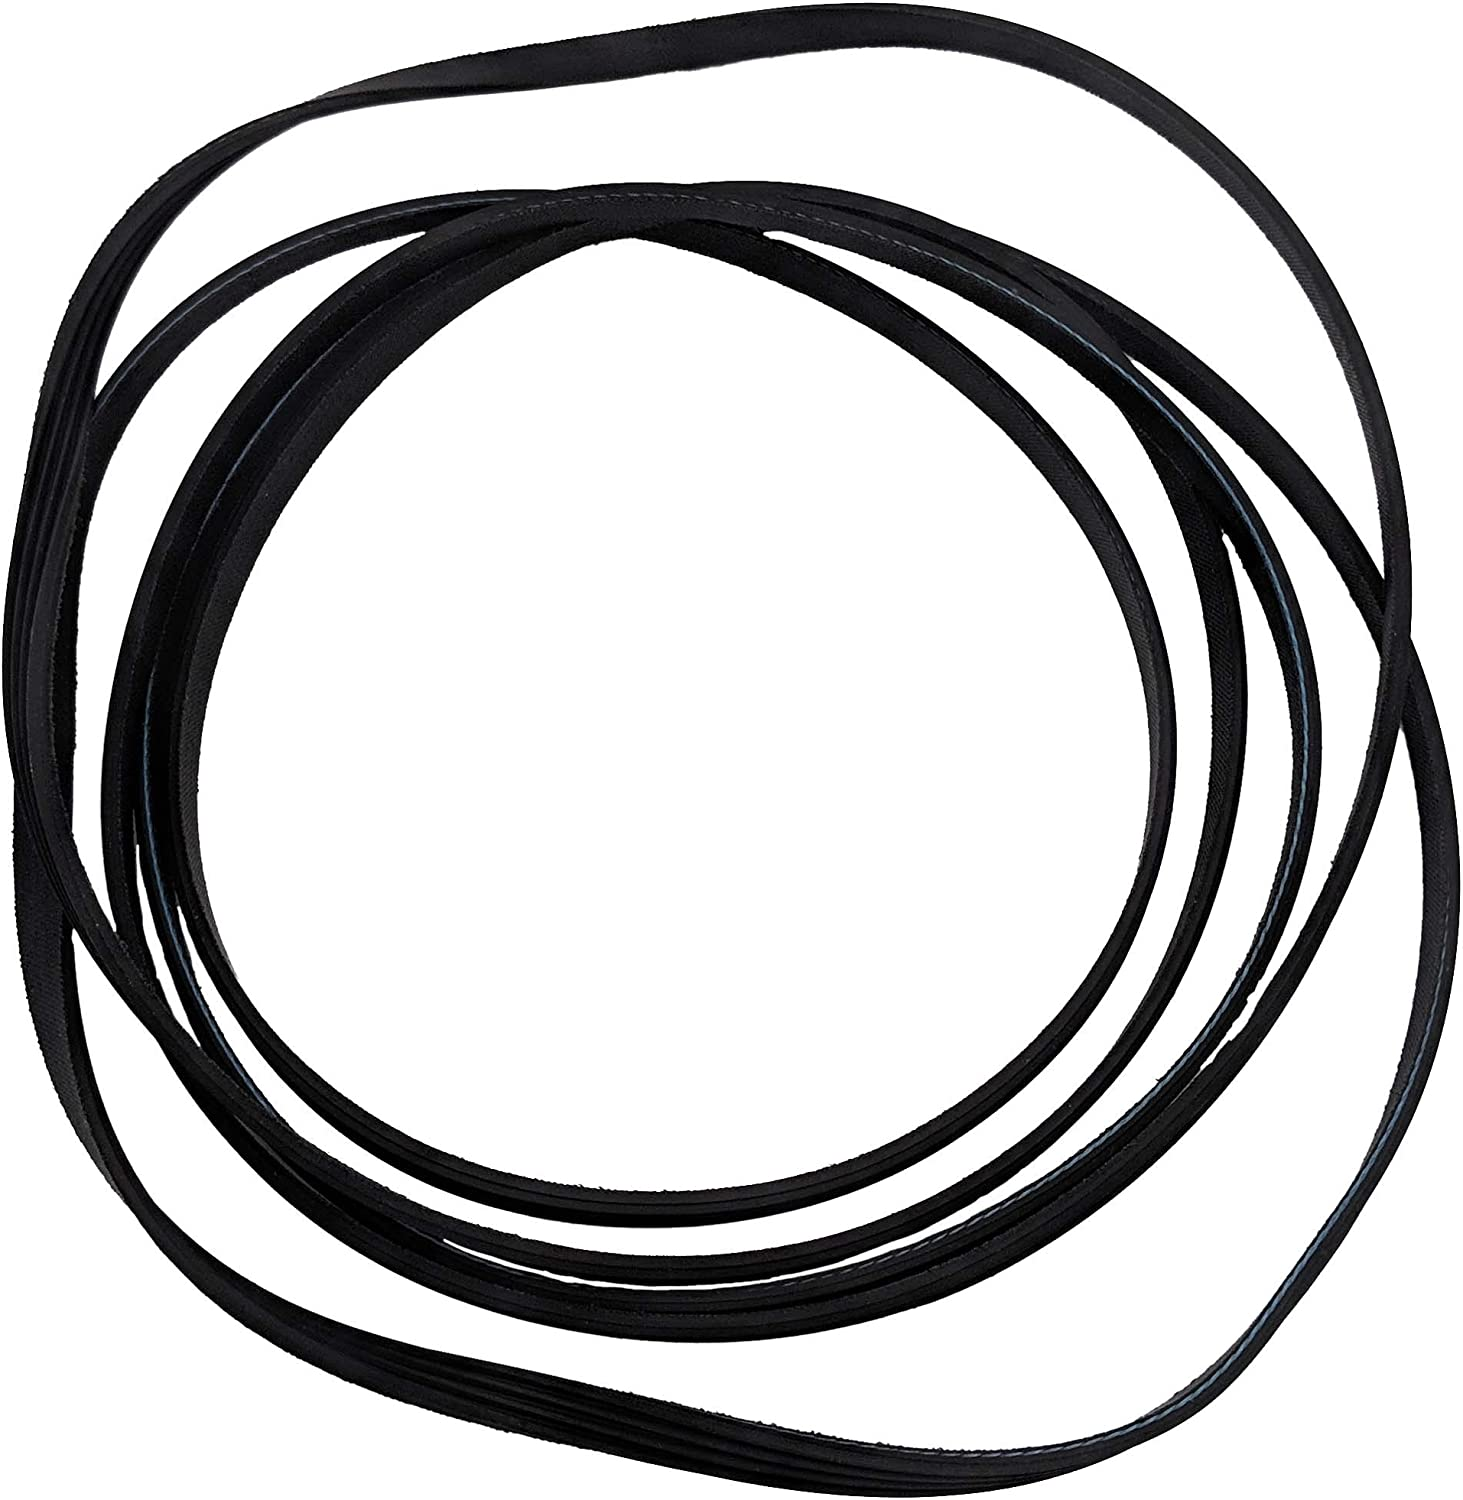 Supplying Demand 341241 Clothes Dryer Belt Fits Whirlpool 31531589 3394651